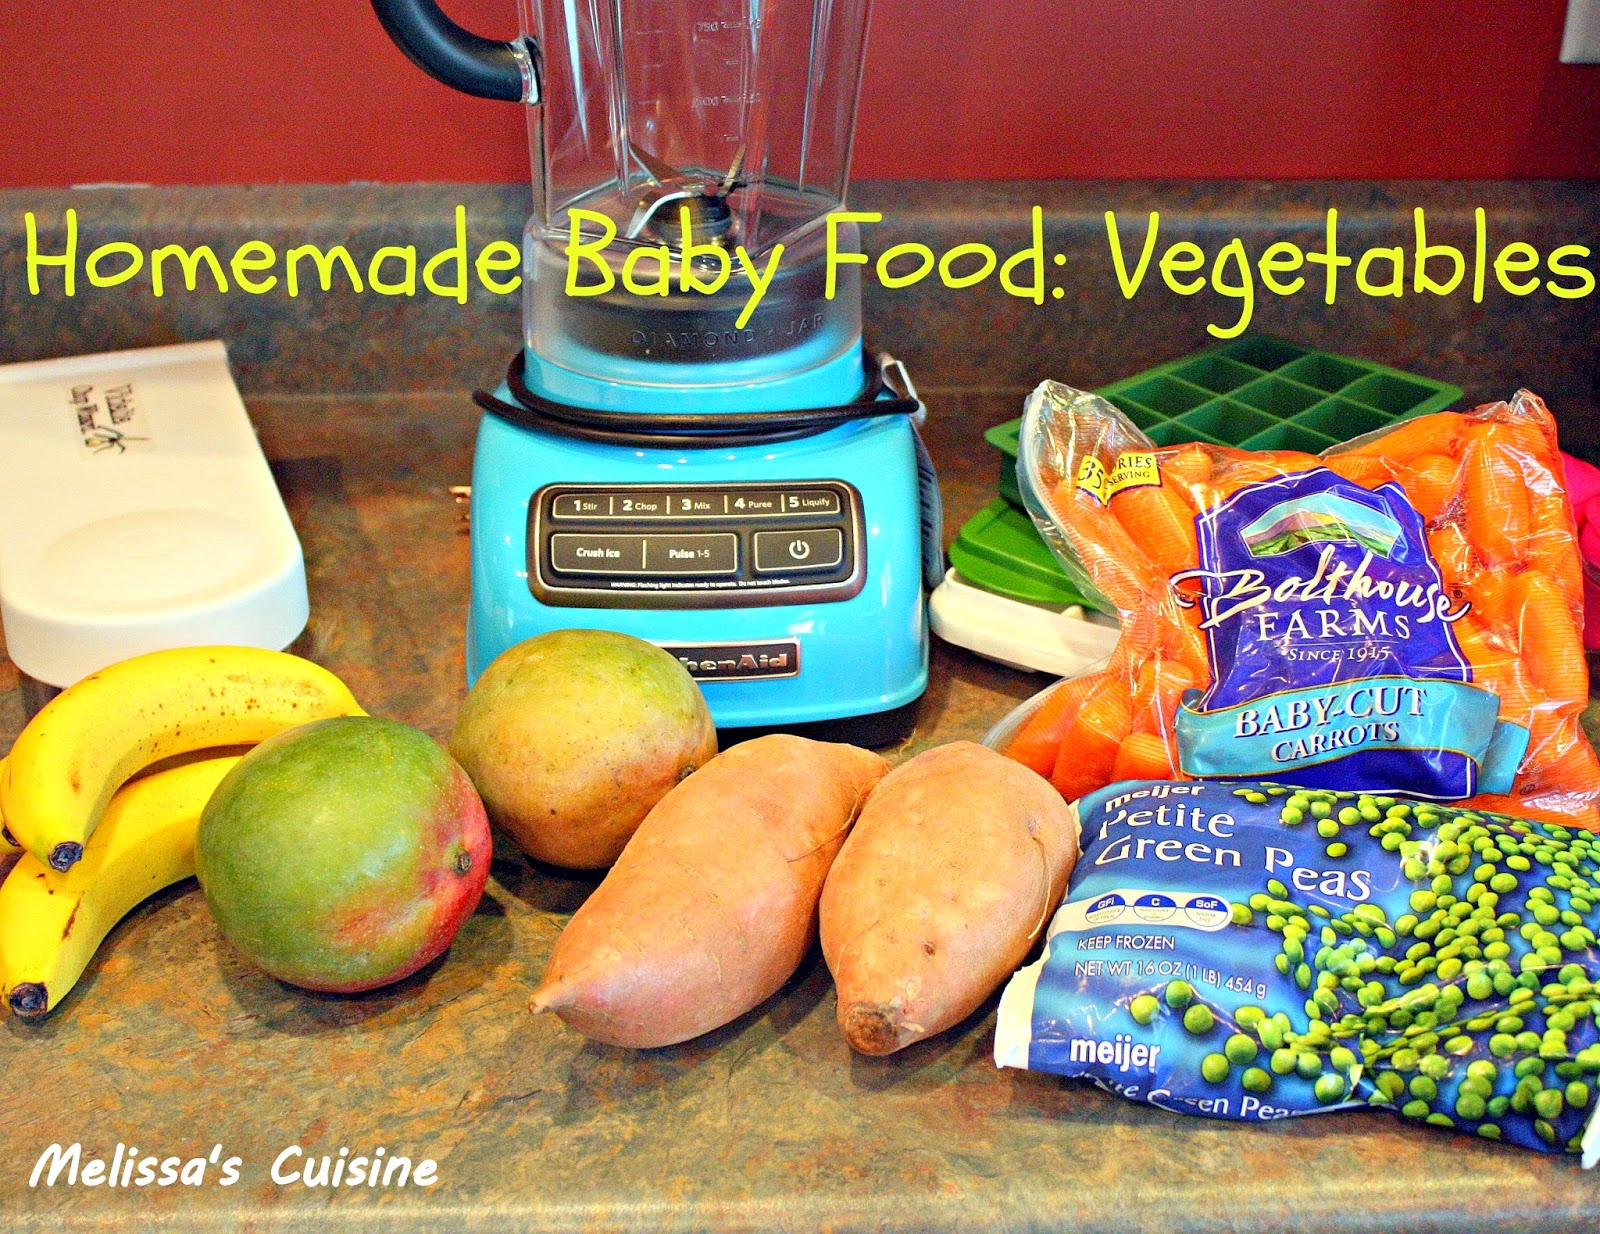 Melissa's Cuisine:  Homemade Baby Food: Vegetables